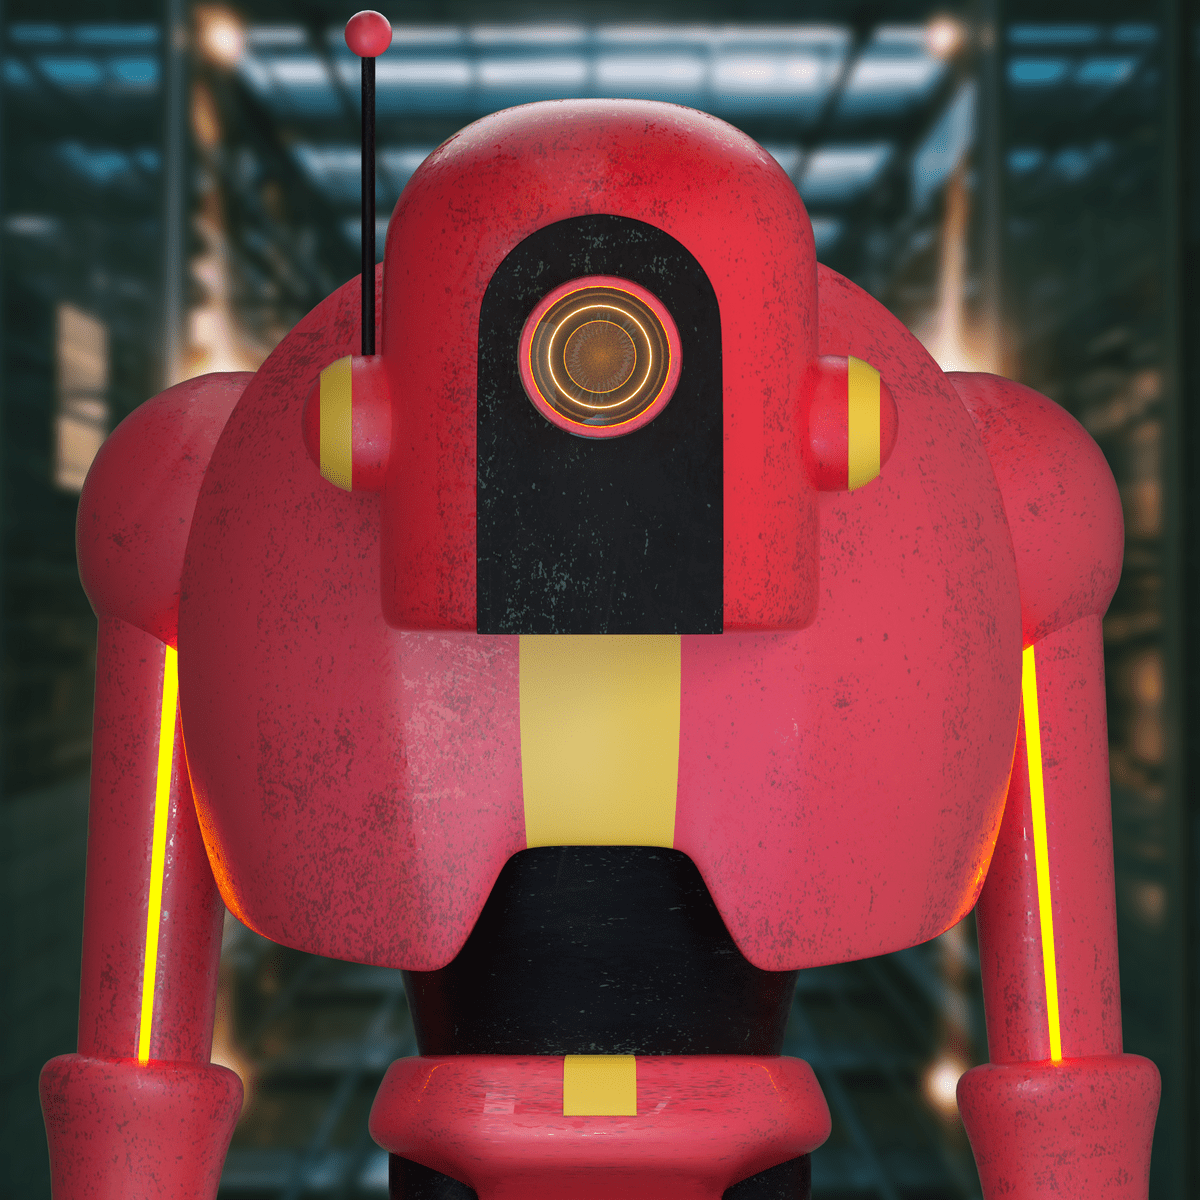 a red robot in 3d design style